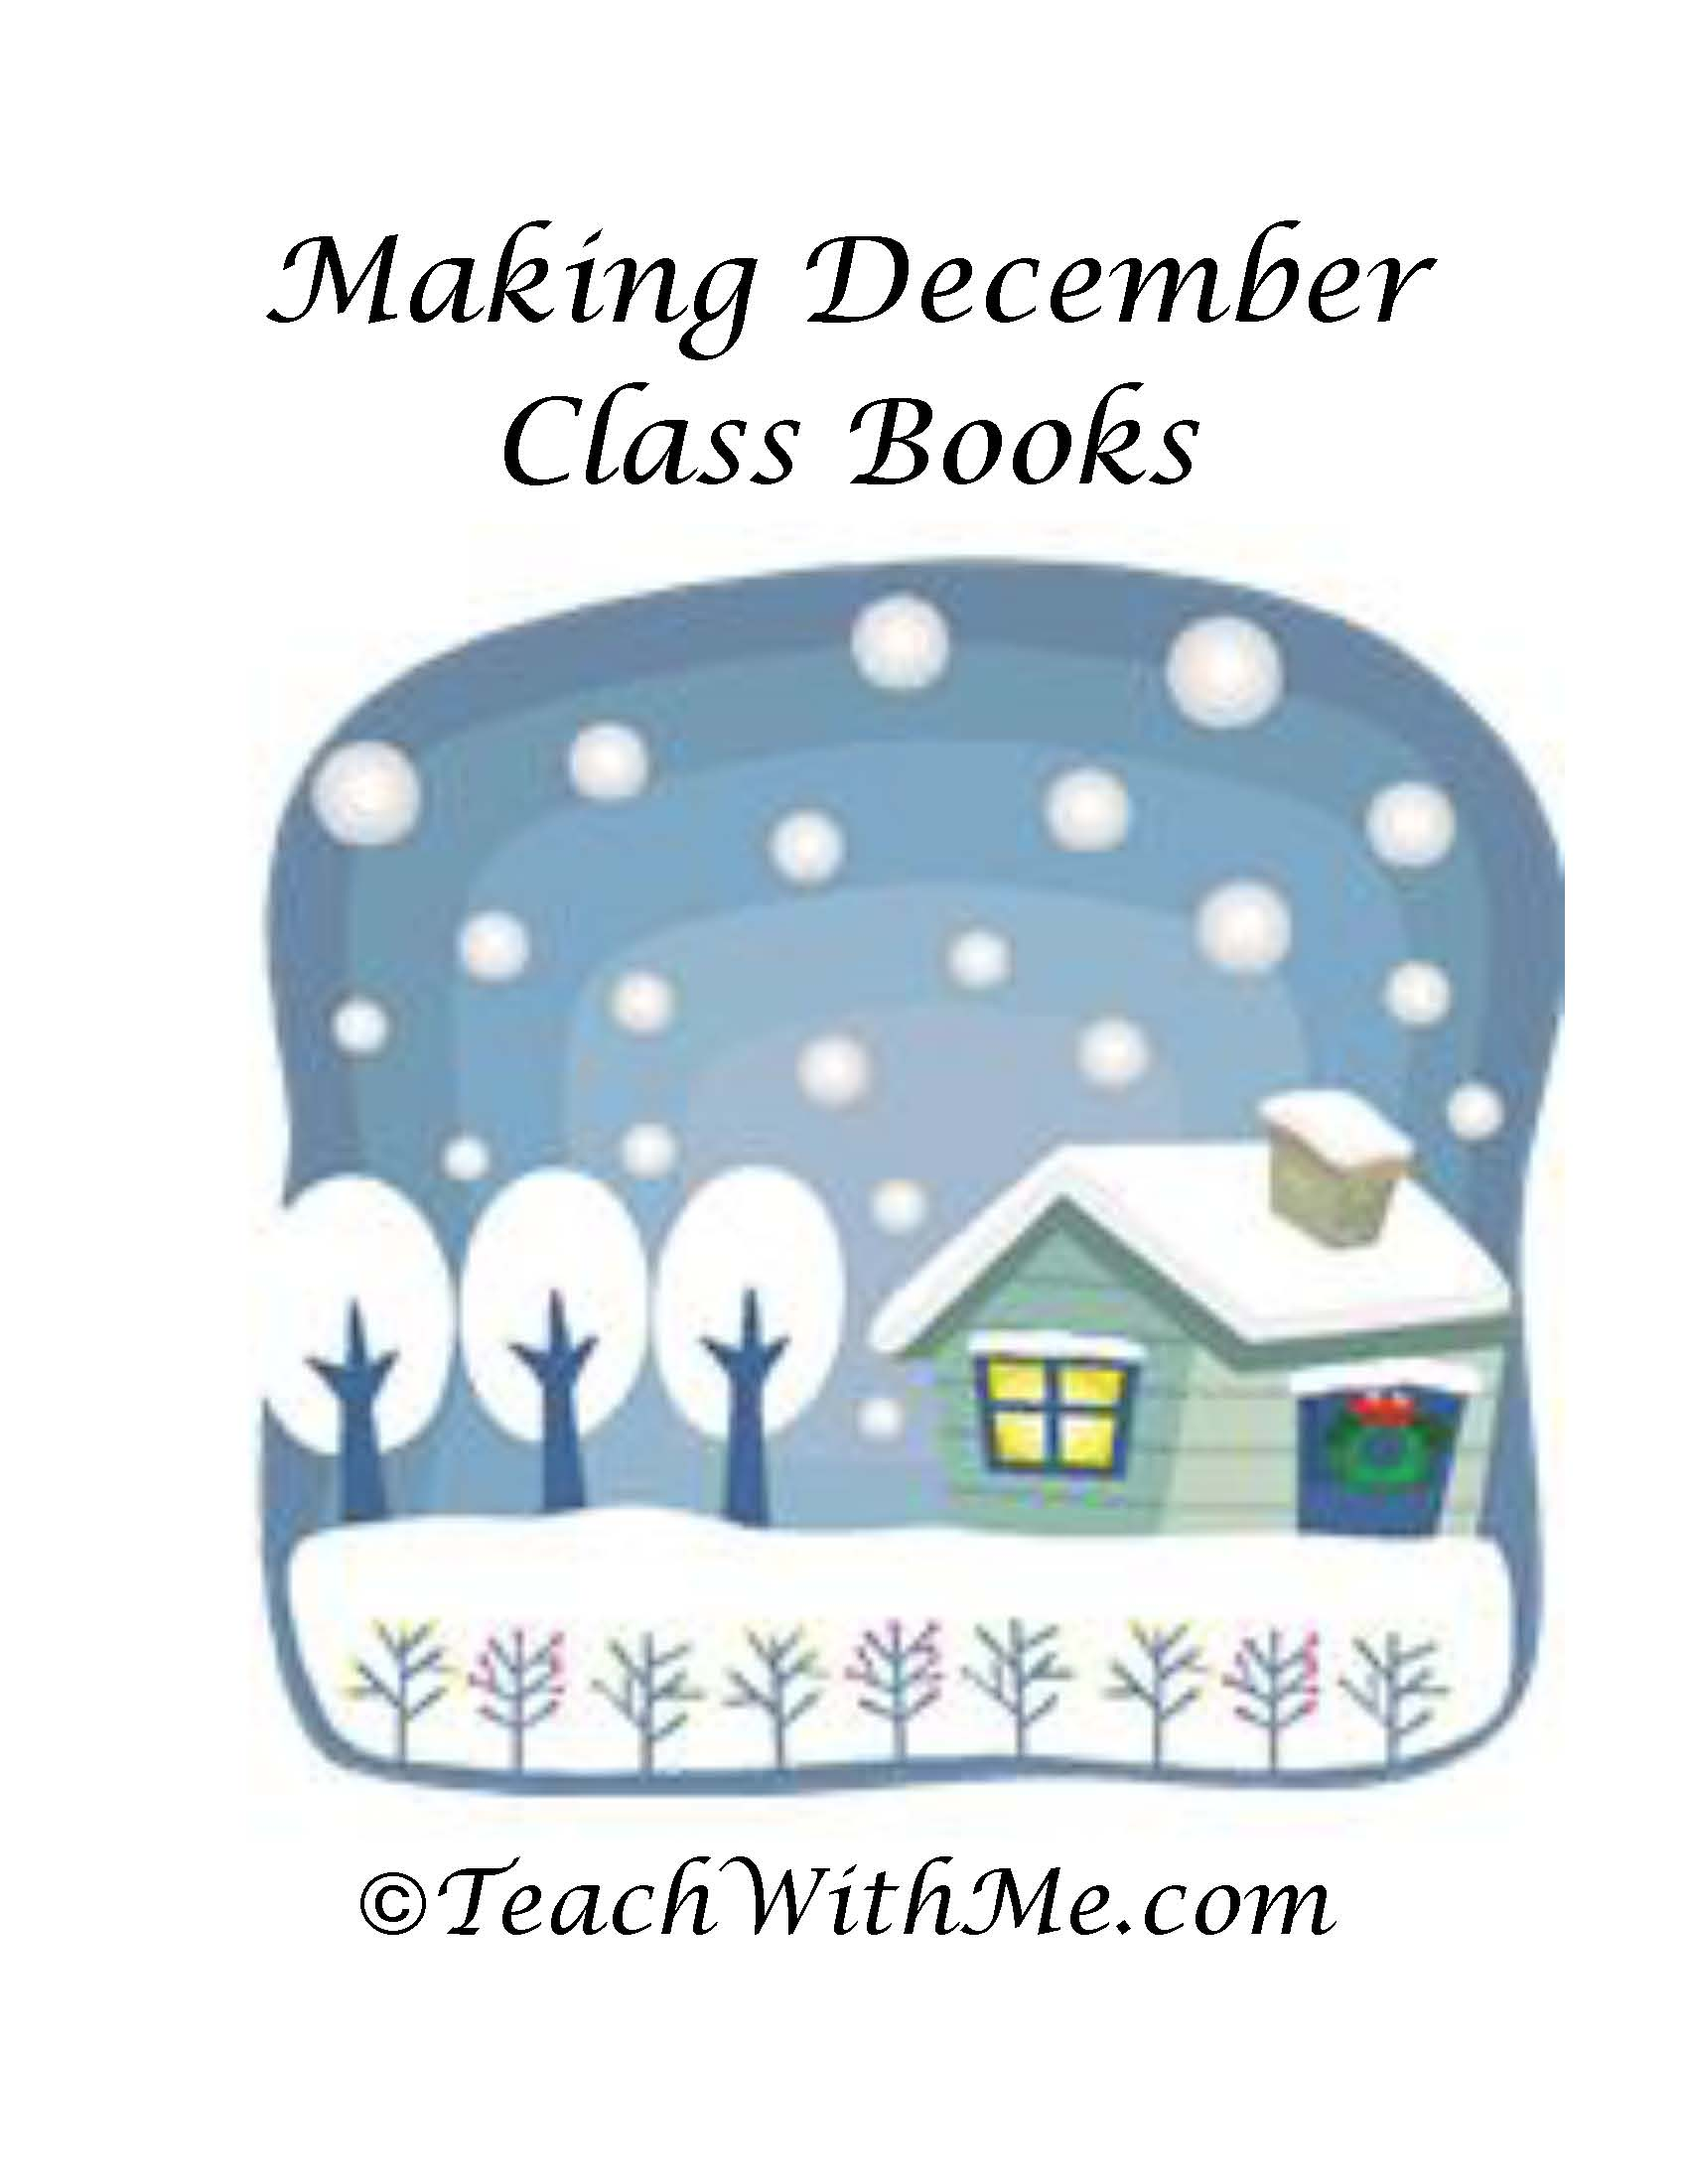 christmas activities, penguin activities, december writing prompts, december writing activities, december graphing, graphing activities,  color word activities, number word activities, making class books, snow day activities, writing prompts for december, december booklets, writing centers, daily 5 activites, daily 5 activities for december, winter writing activites, winter writng prompts, christmas writing